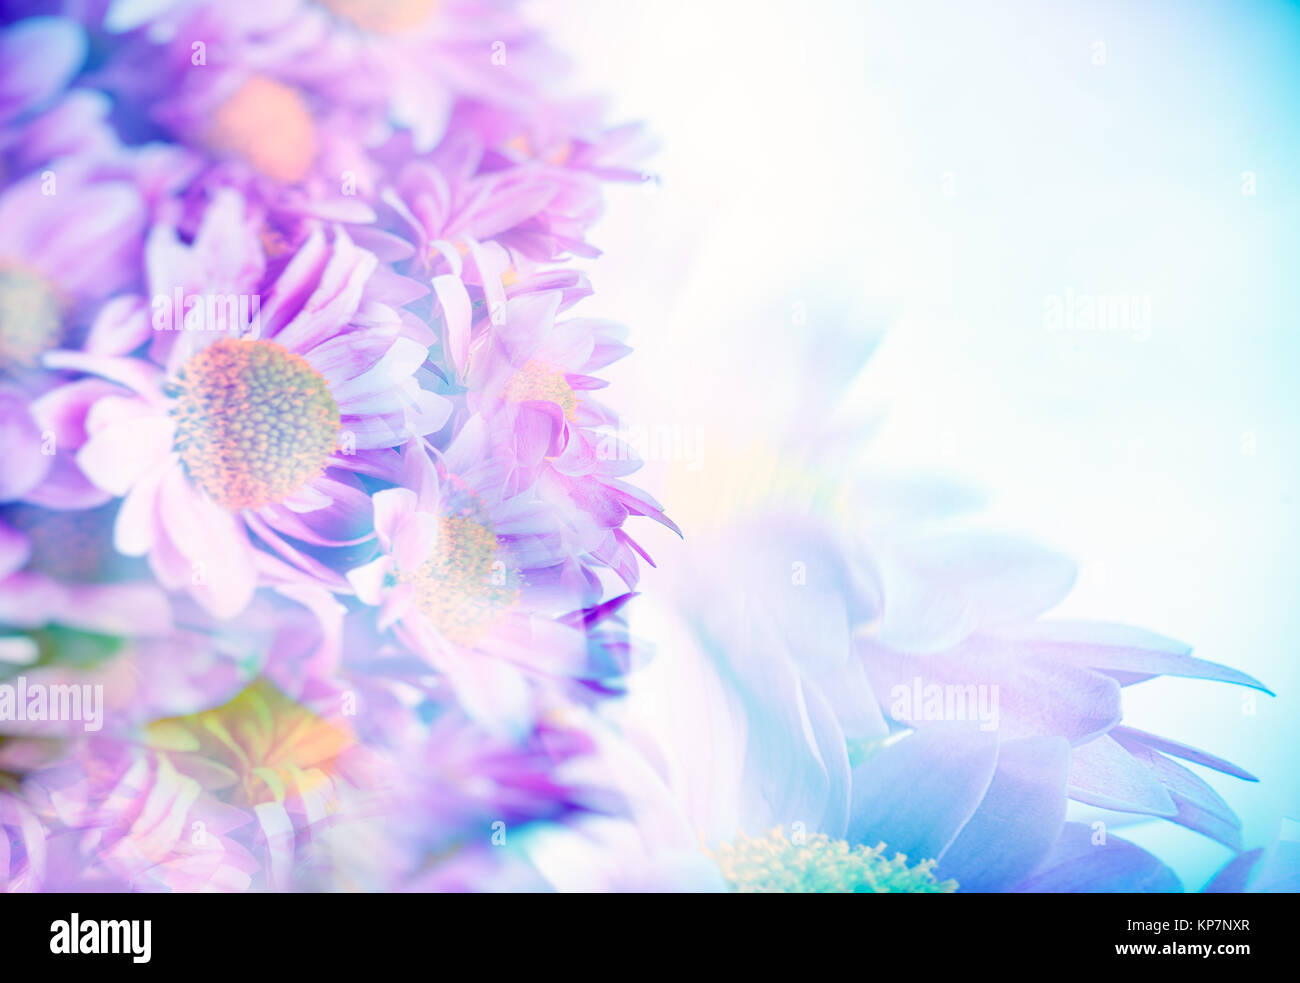 Border of a beautiful pink blue daisy flowers, gentle flower bouquet ...